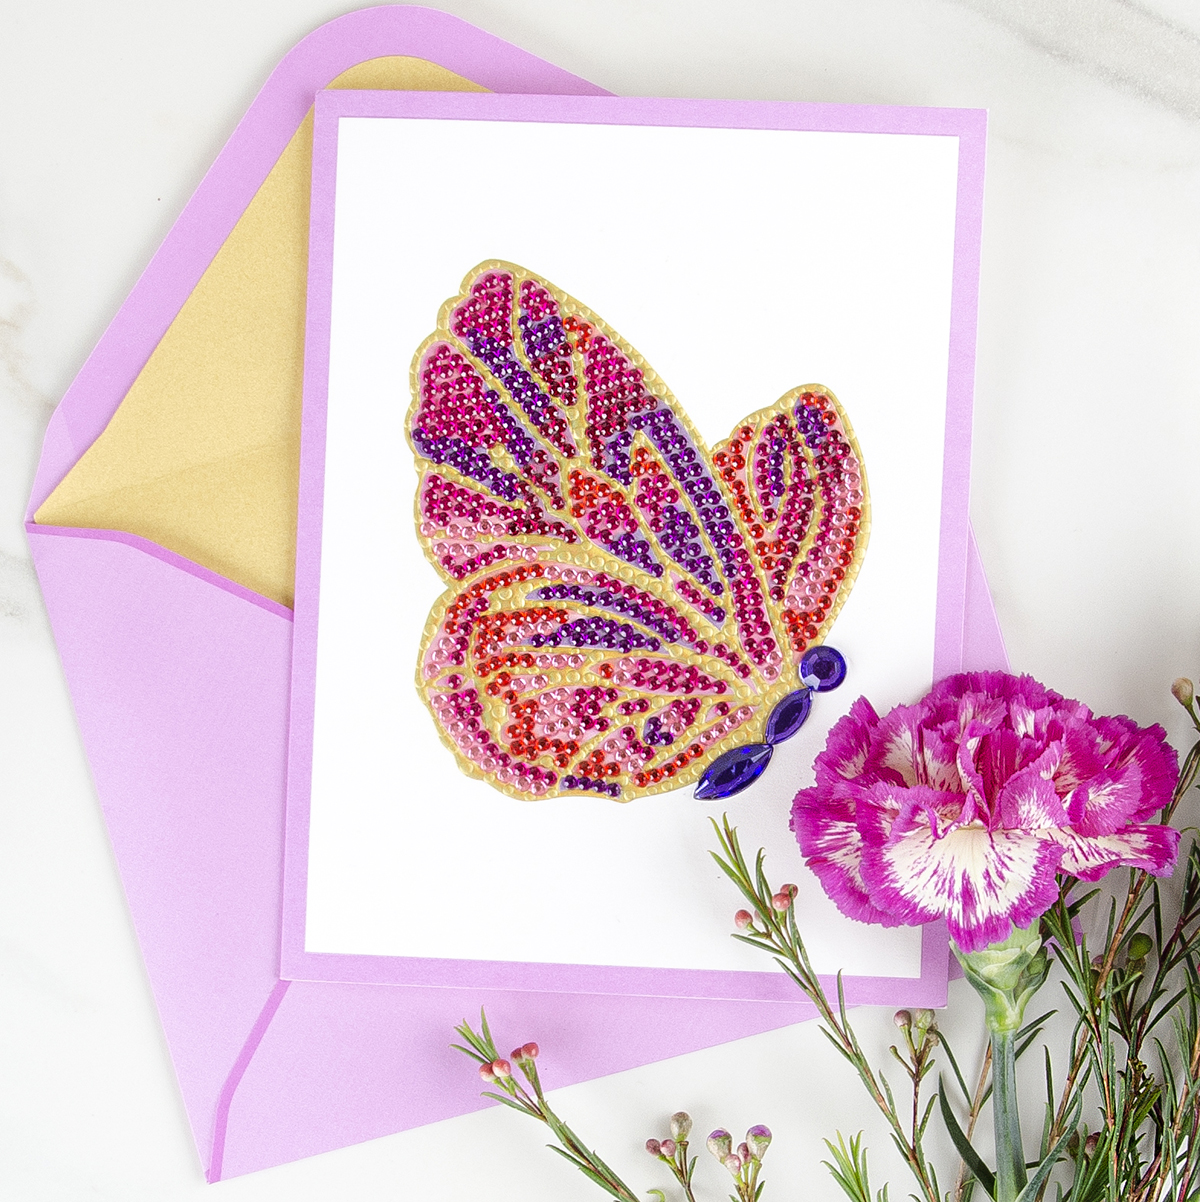 Judith Leiber Couture collaborates with Papyrus on greeting cards.